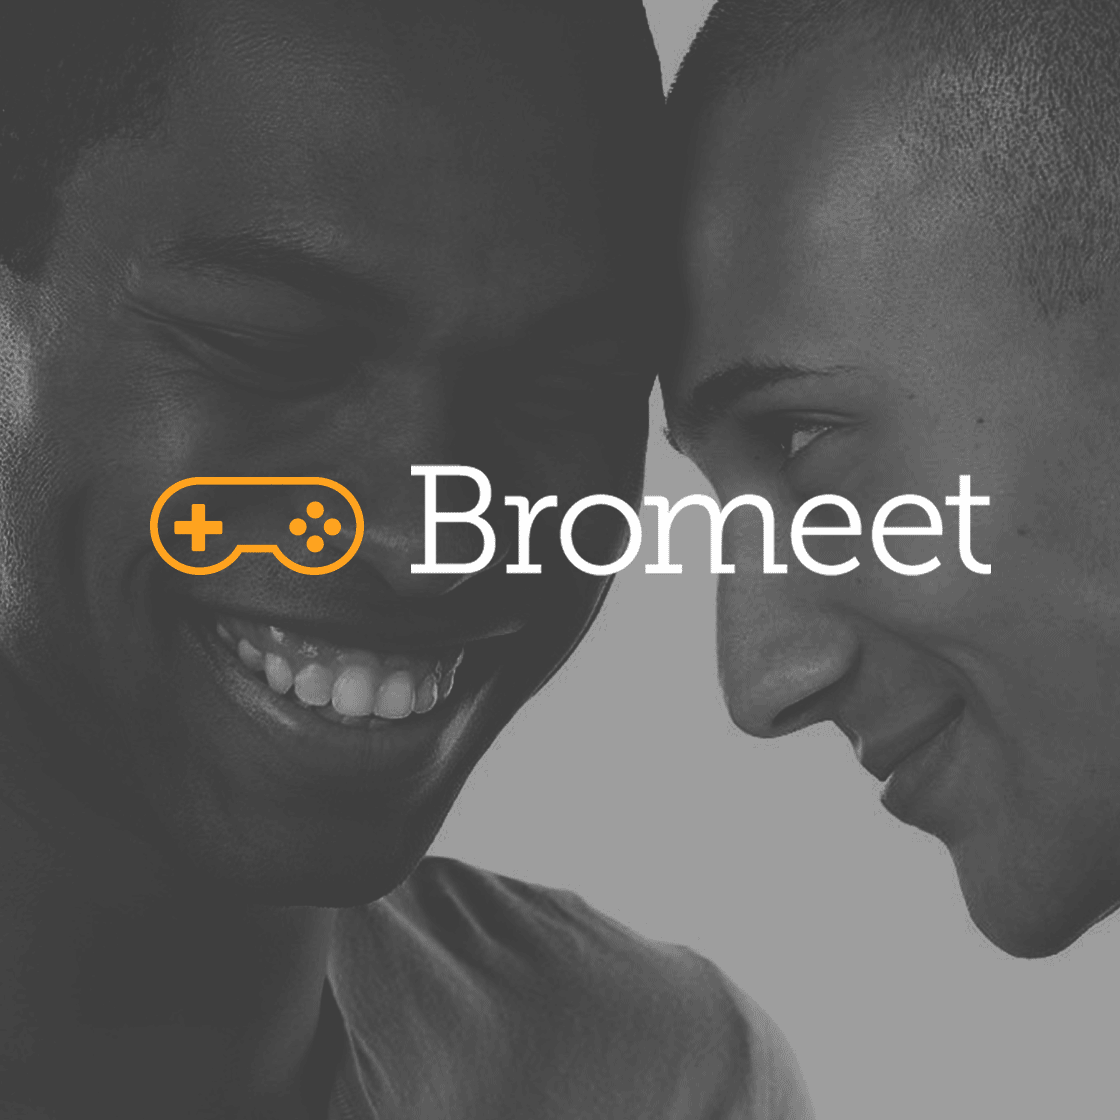 <strong>Mobile Application Design</strong>. Bromeet caters to the sapiosexual man seeking another based off similar, peculiar interests. Utilizing common interests and locations, Bromeet creates a radar of potential matches near and far. Users can send messages and share photos with other members. Profile photo uploads, privacy settings, and extensive radar filters offer a tailored experience for any lifestyle.